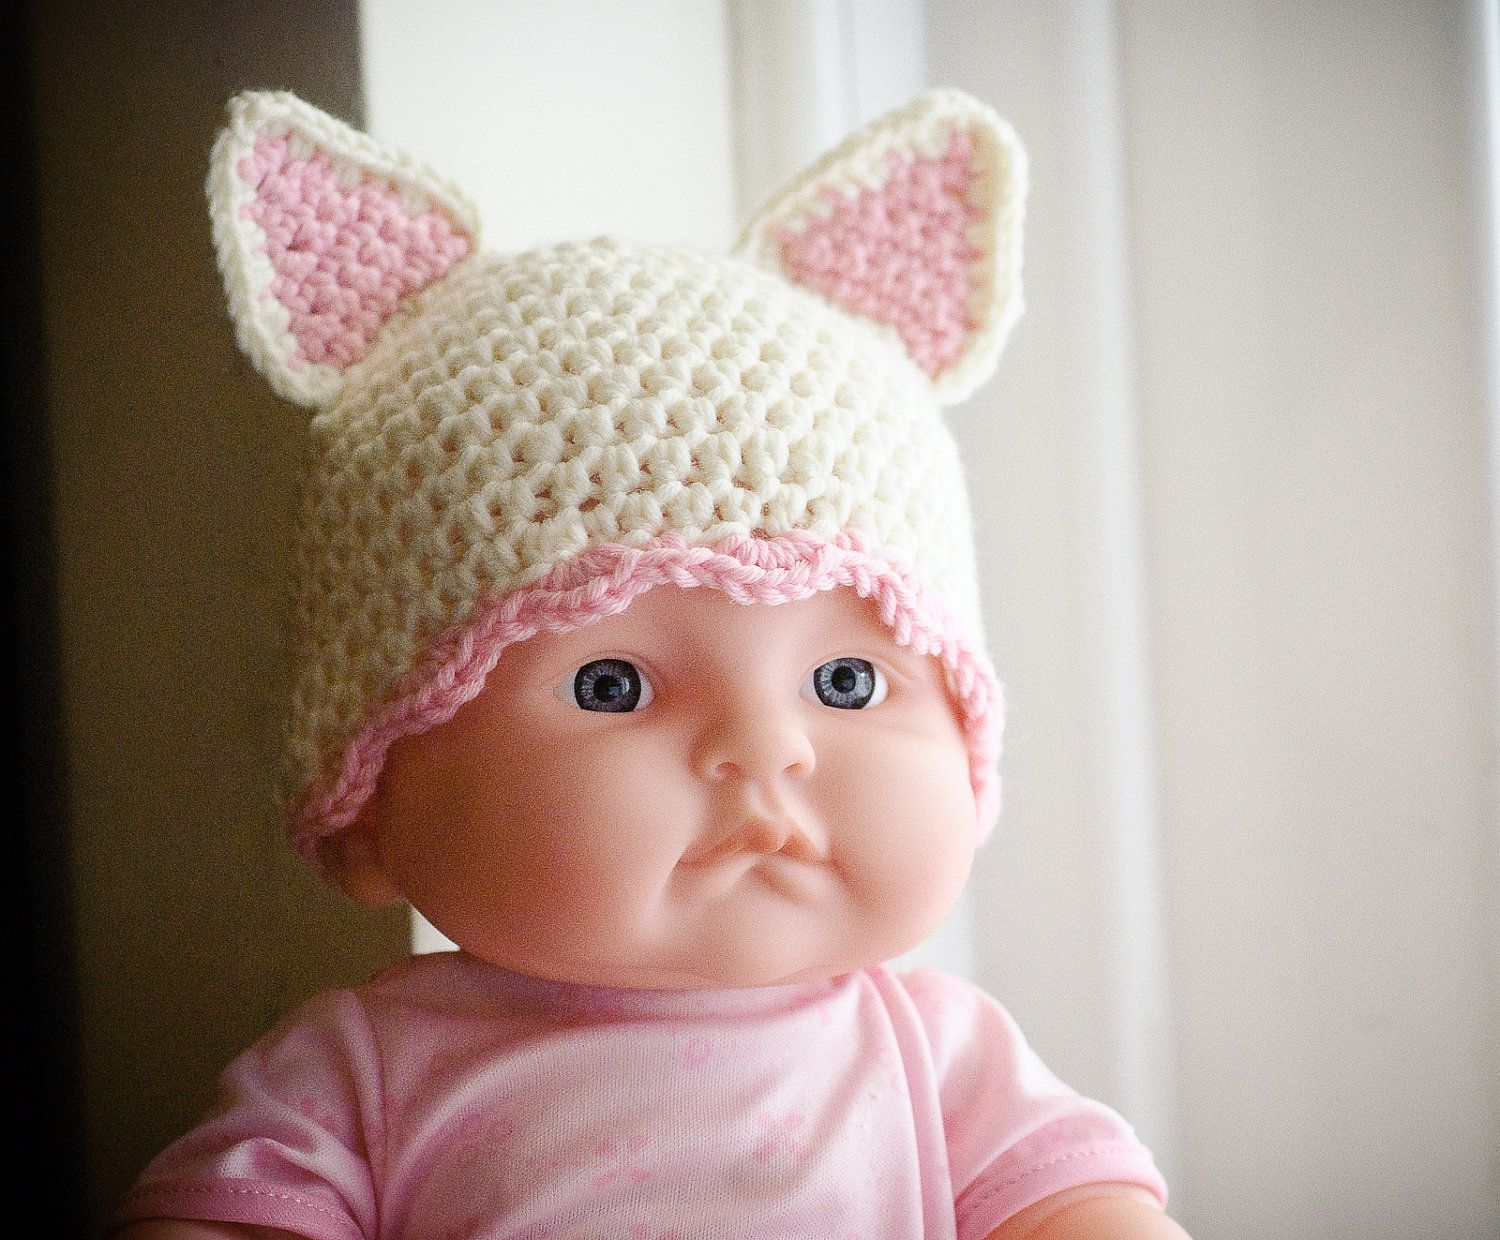 Items Similar To Crochet Baby Girl Hat Cat Ears Sizes From Newborn To Toddler High Quality Soft Wool Blend Yarn Crochet Baby Hats Baby Girl Hats Crochet Baby